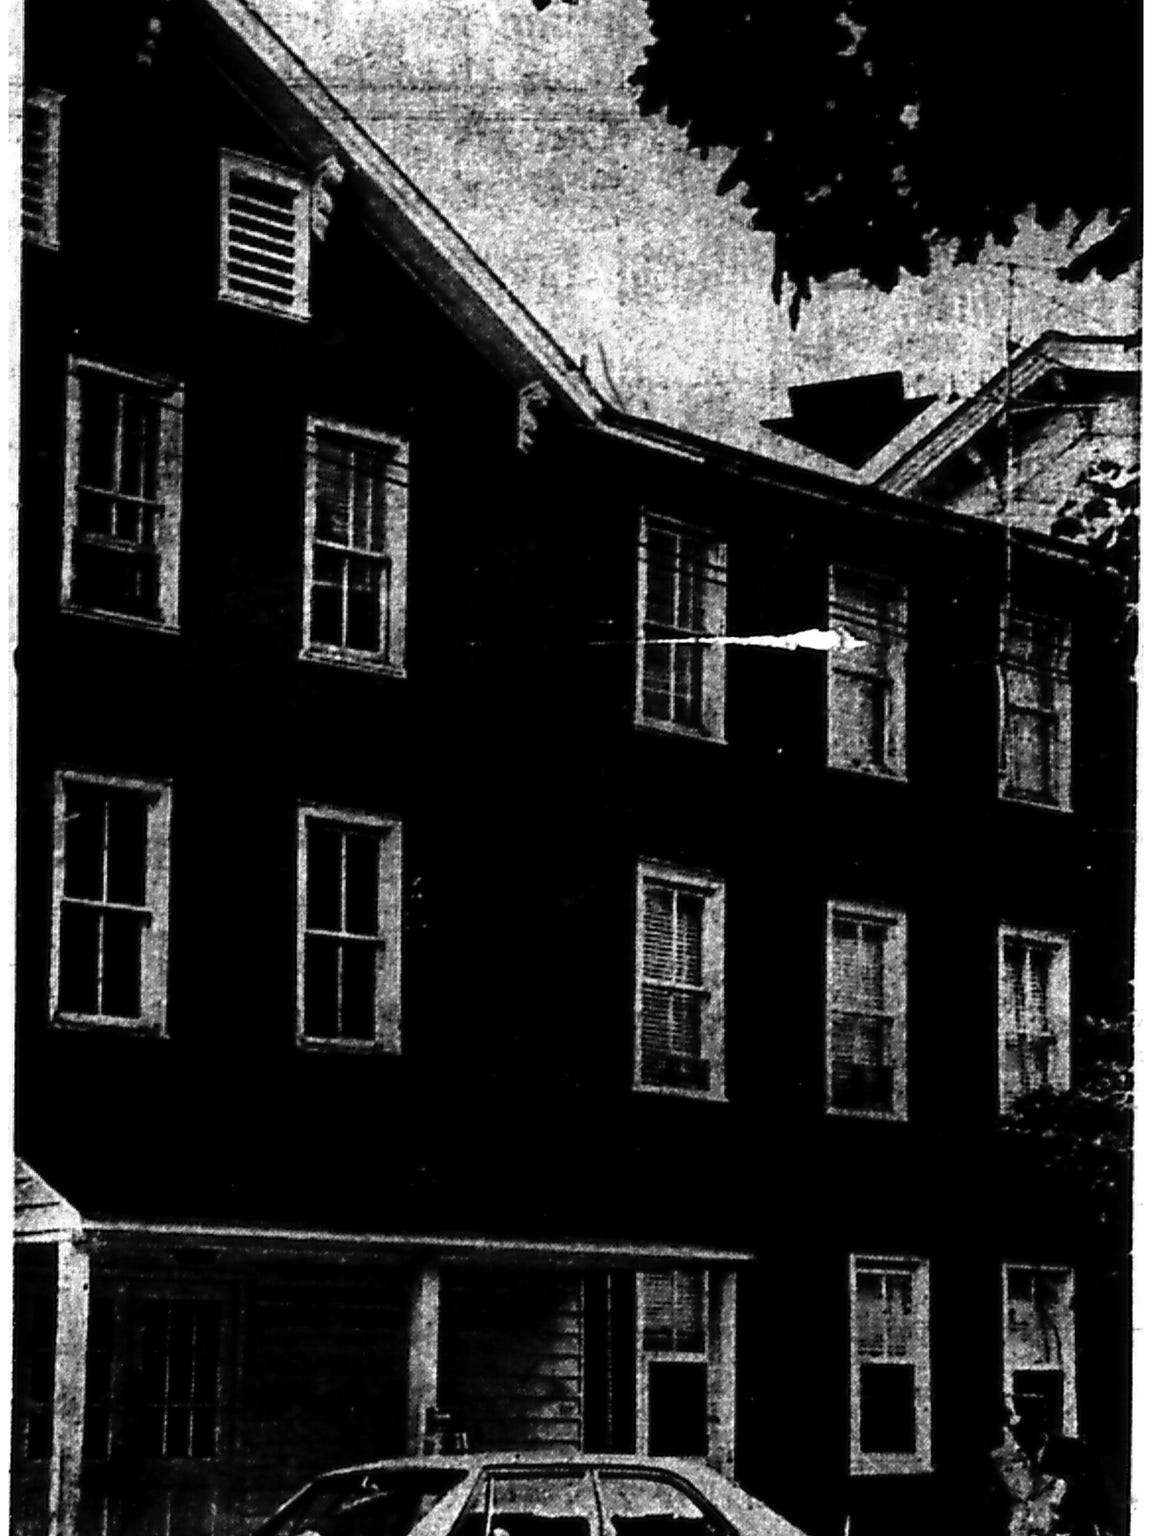 The apartment building at 770 Maple St., where Peggy Reber was murdered, as pictured in the Lebanon Daily News.